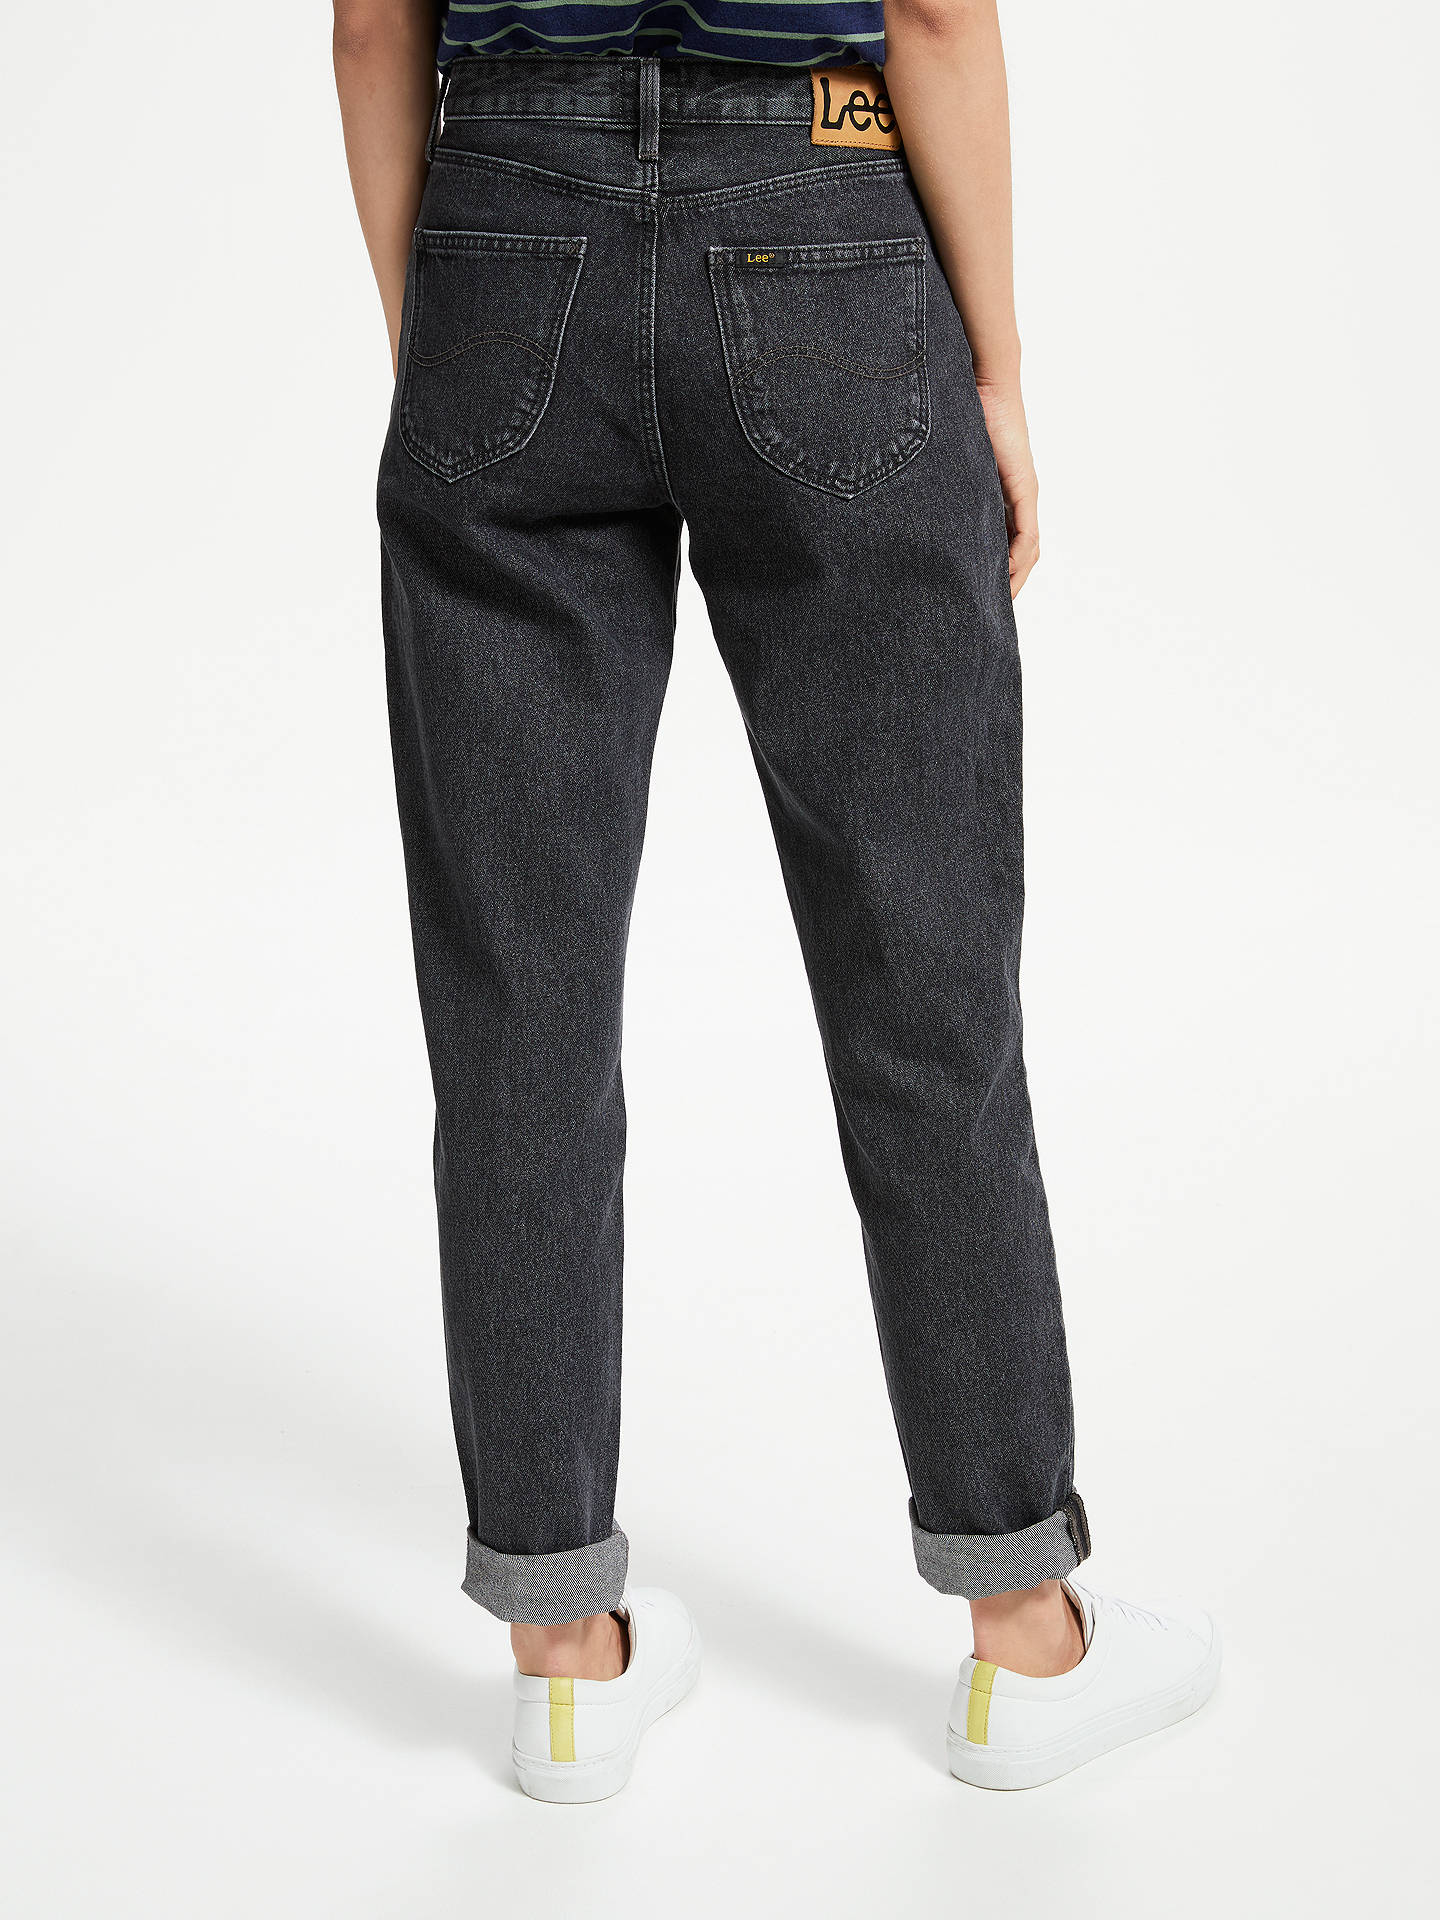 00c5e4df ... Buy Lee Mom Straight Relaxed Leg Jeans, Black Stone, W27/L31 Online at  ...